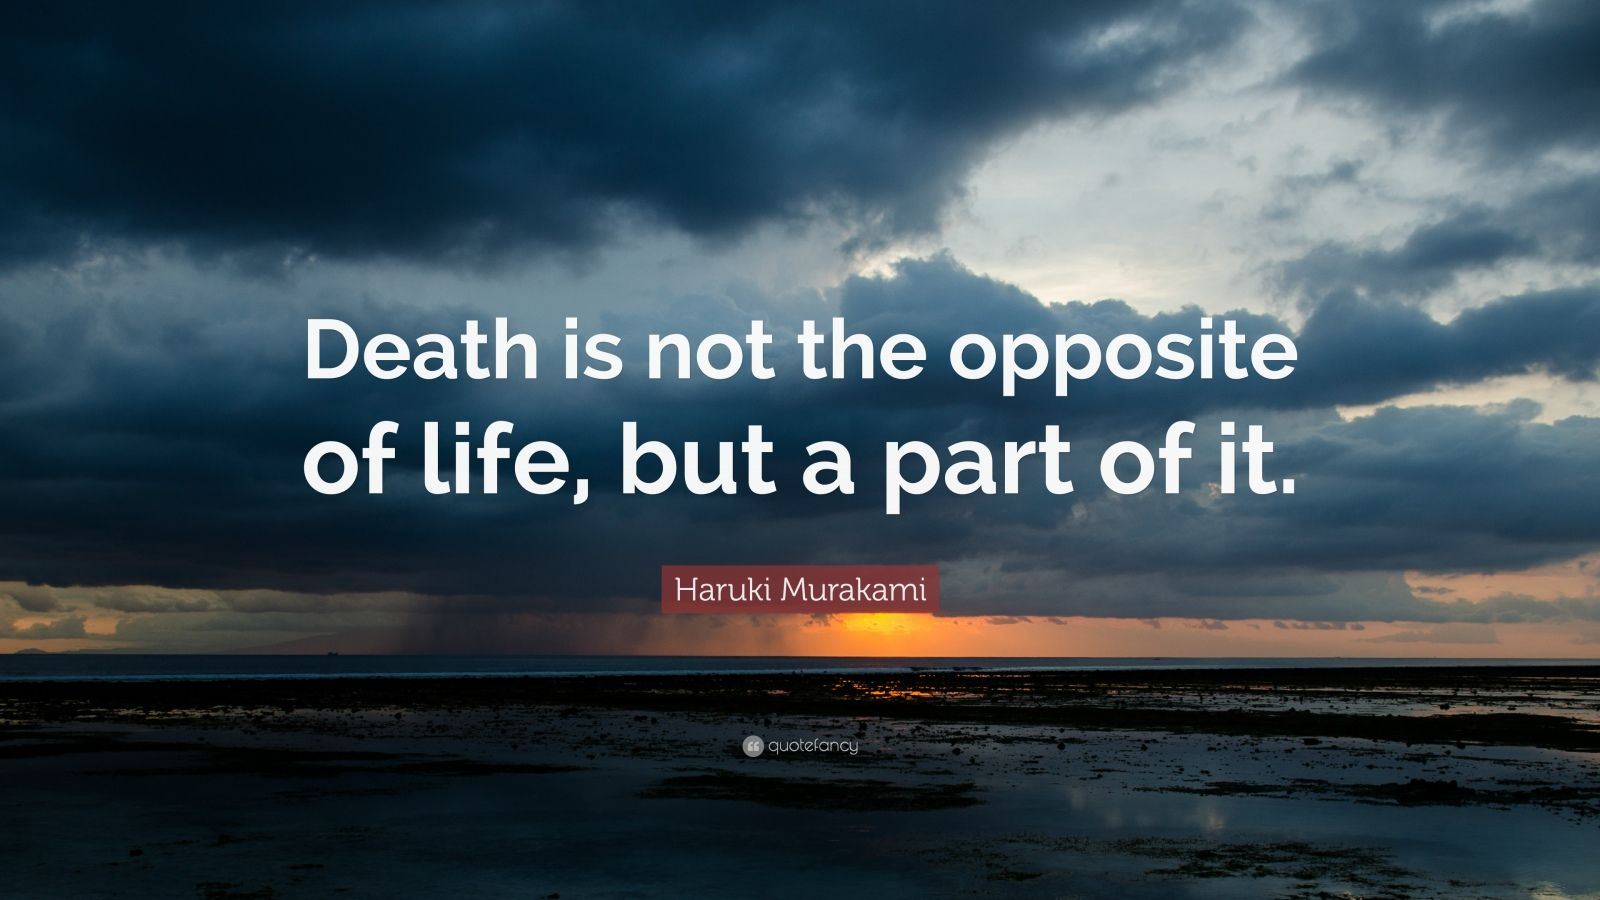 Ernest Hemingway Quote Wallpaper Haruki Murakami Quote Death Is Not The Opposite Of Life